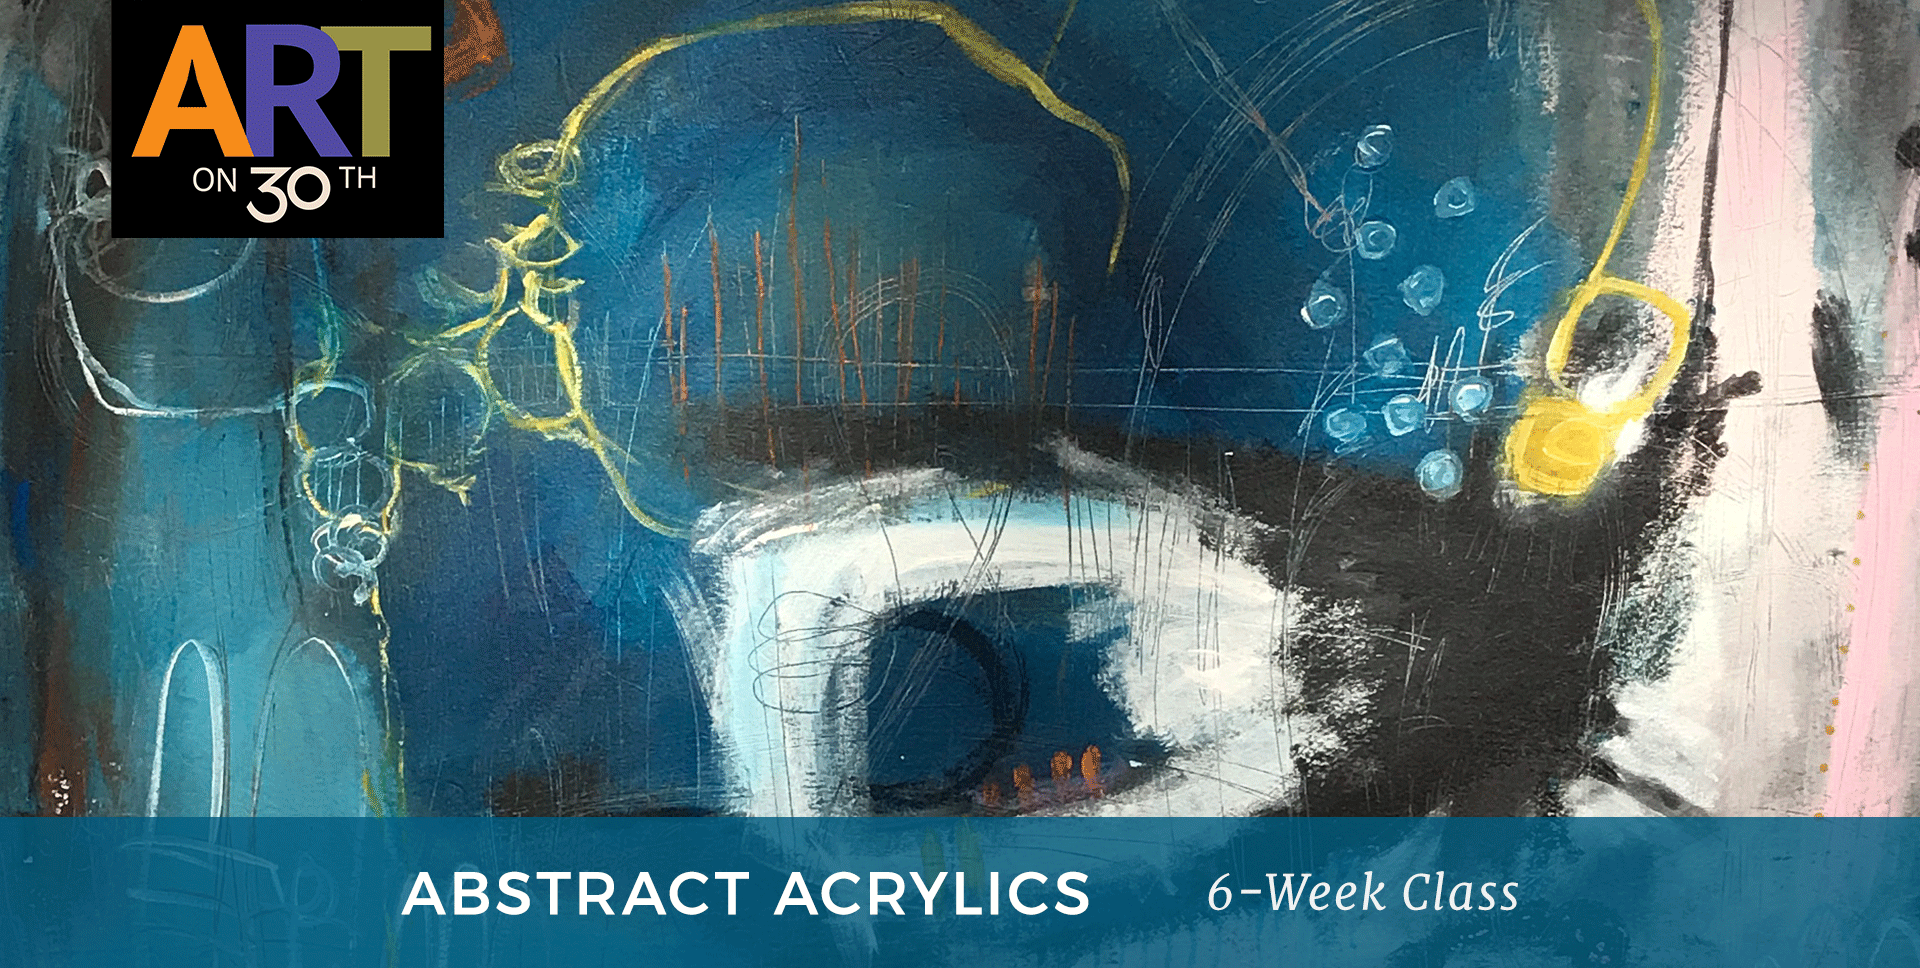 WED - Abstract Acrylic Painting with Ann Golumbuk & Laurie Fuller